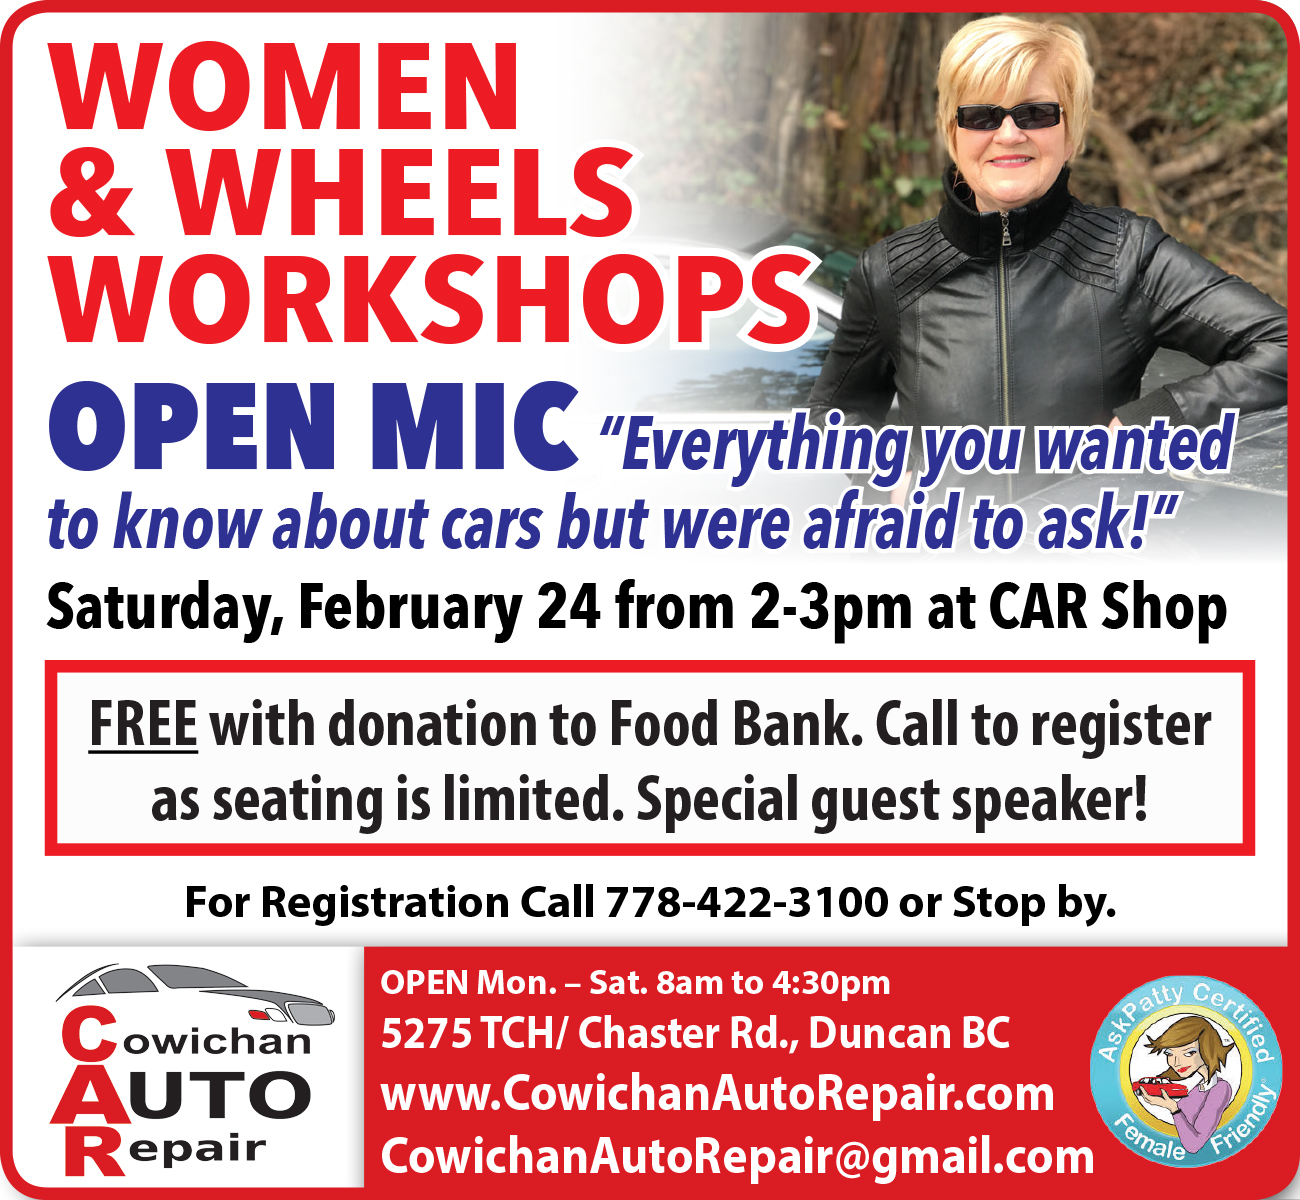 Women & Wheels Workshops - Everything you wanted to know about cars but were afraid to ask